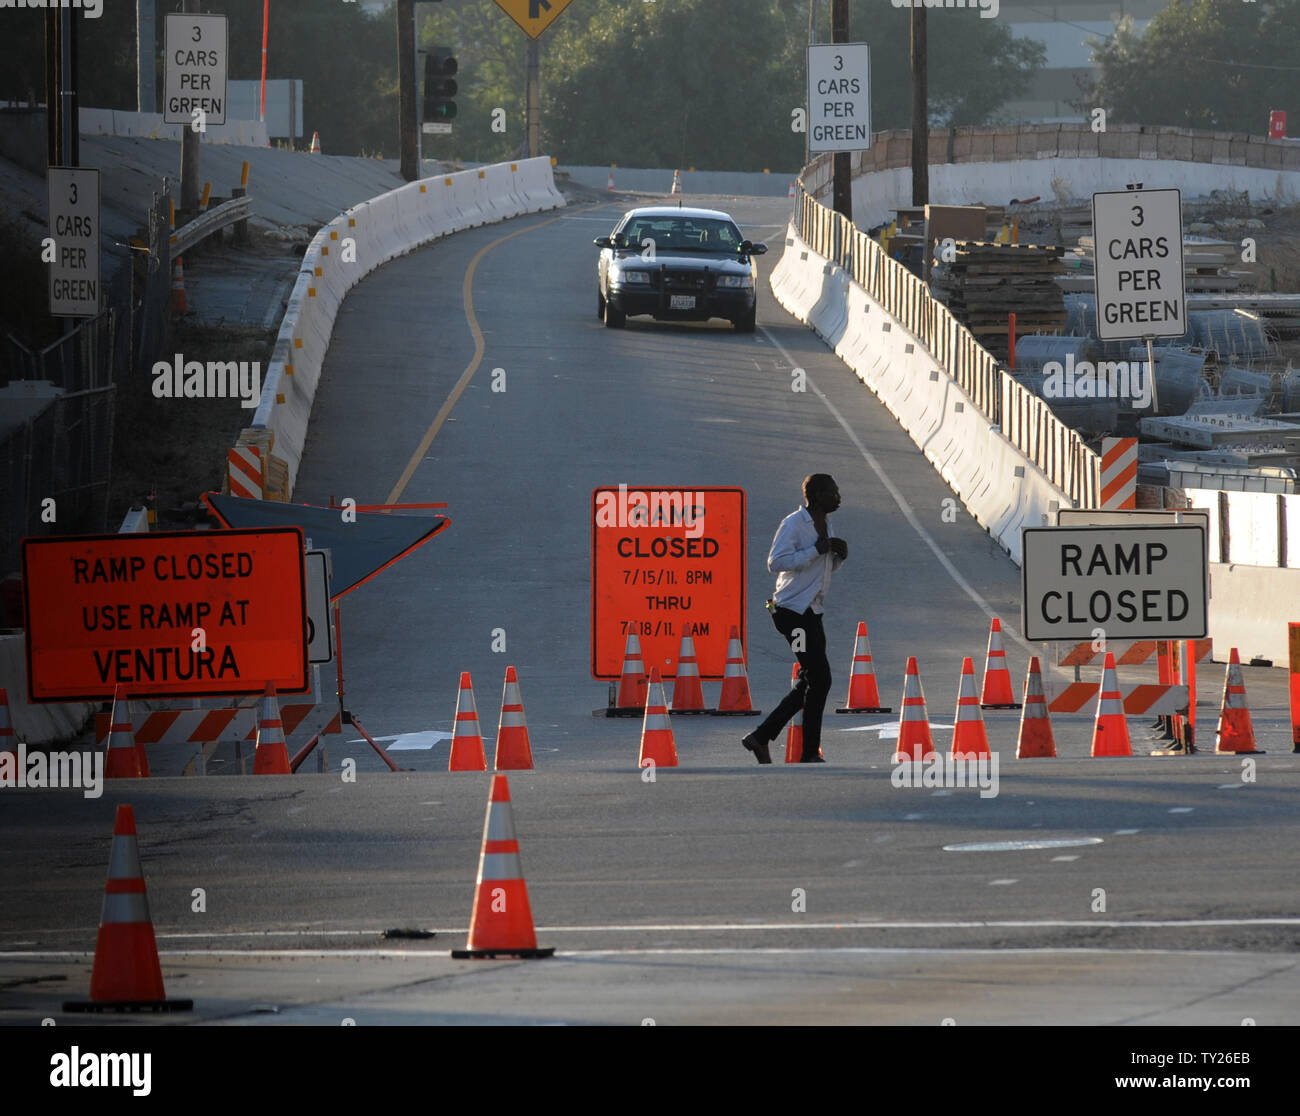 A California Highway Patrol vehicle enforces the closure of